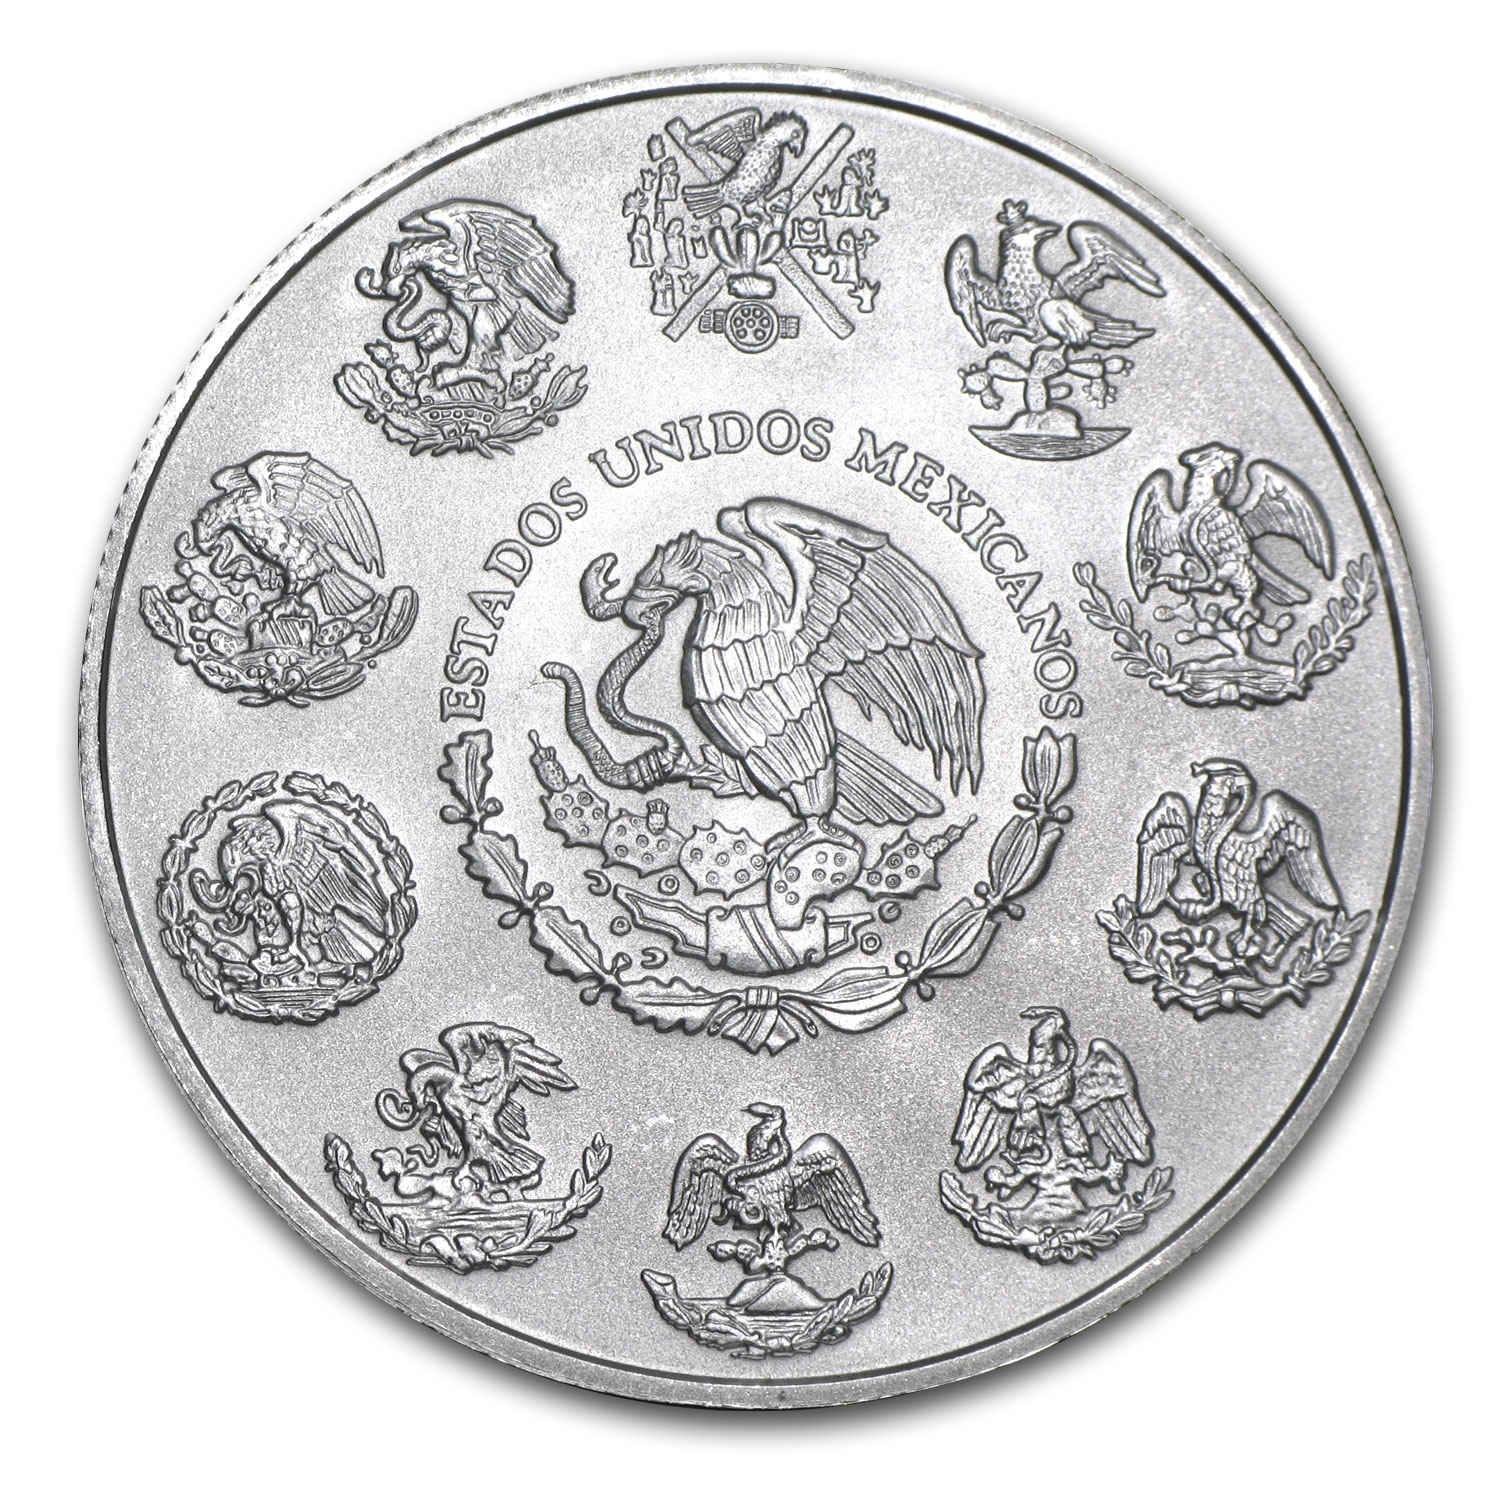 2014 1 oz Silver Mexican Libertad (Brilliant Uncirculated)